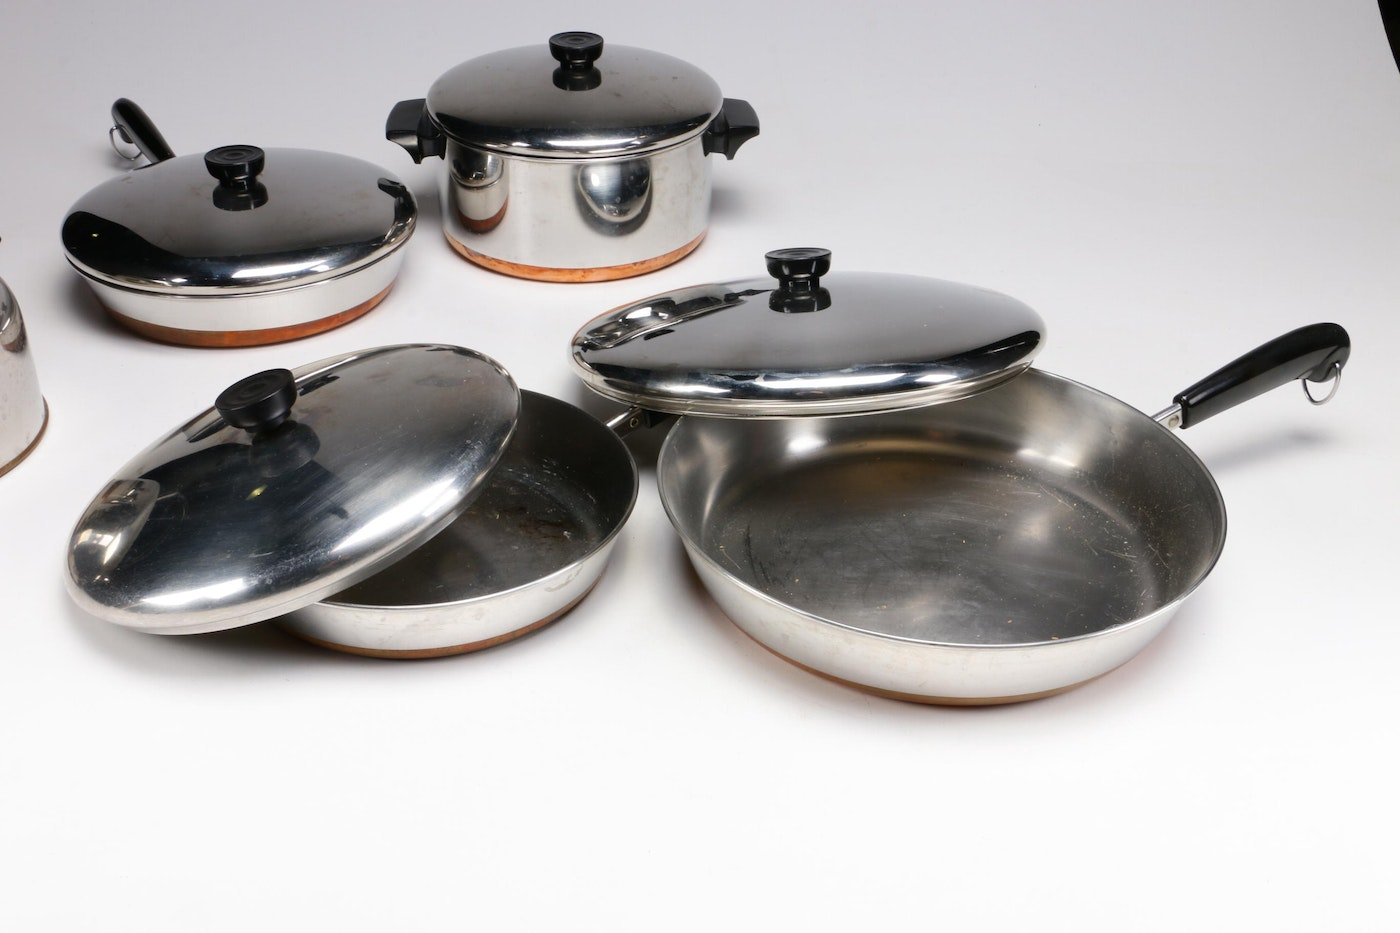 Revere Ware Stainless Steel And Copper Cookware, Mid To